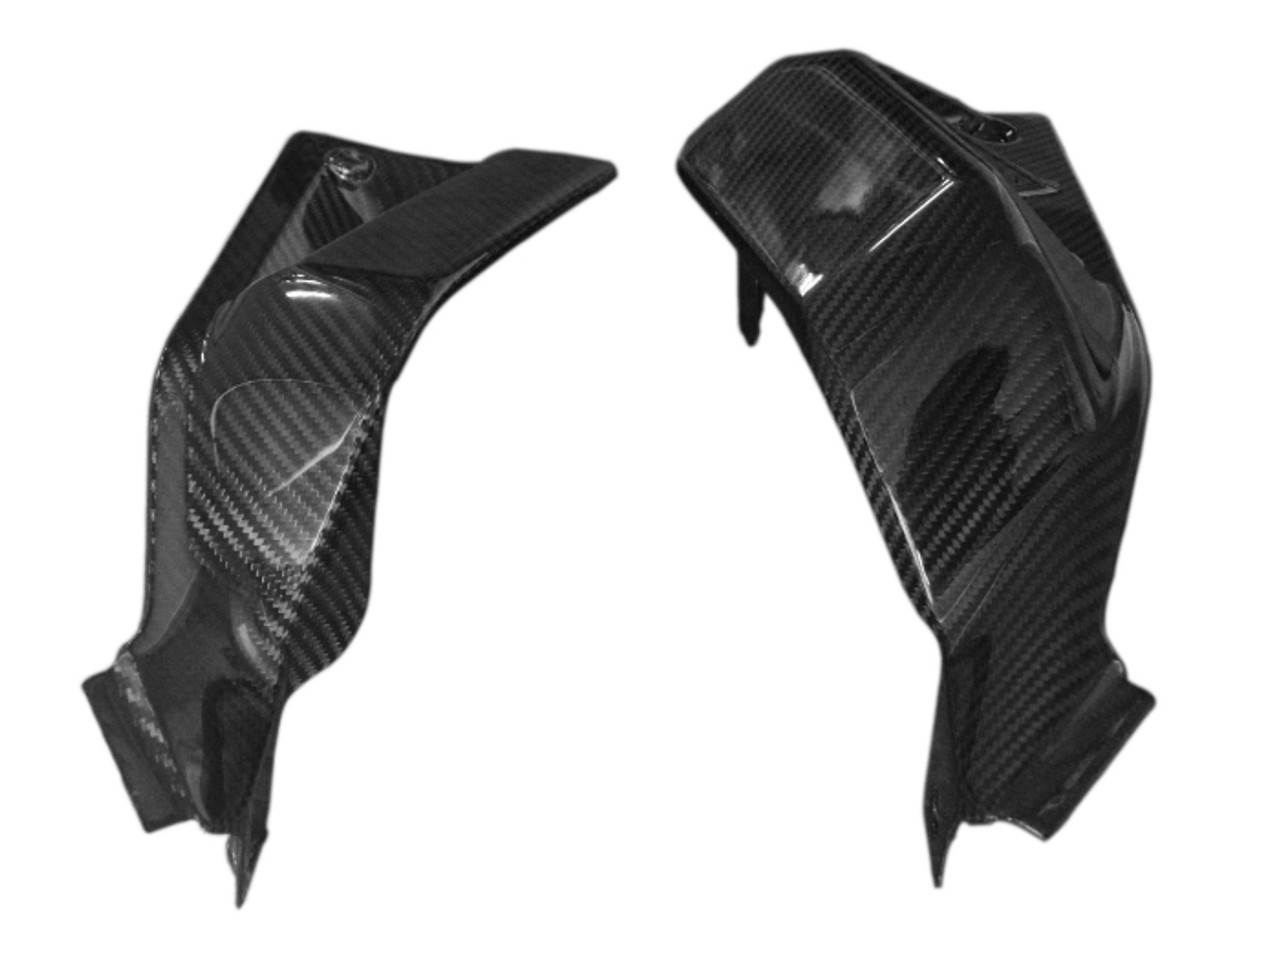 Radiator Covers In Carbon With Fiberglass For Ducati Scrambler Cafe